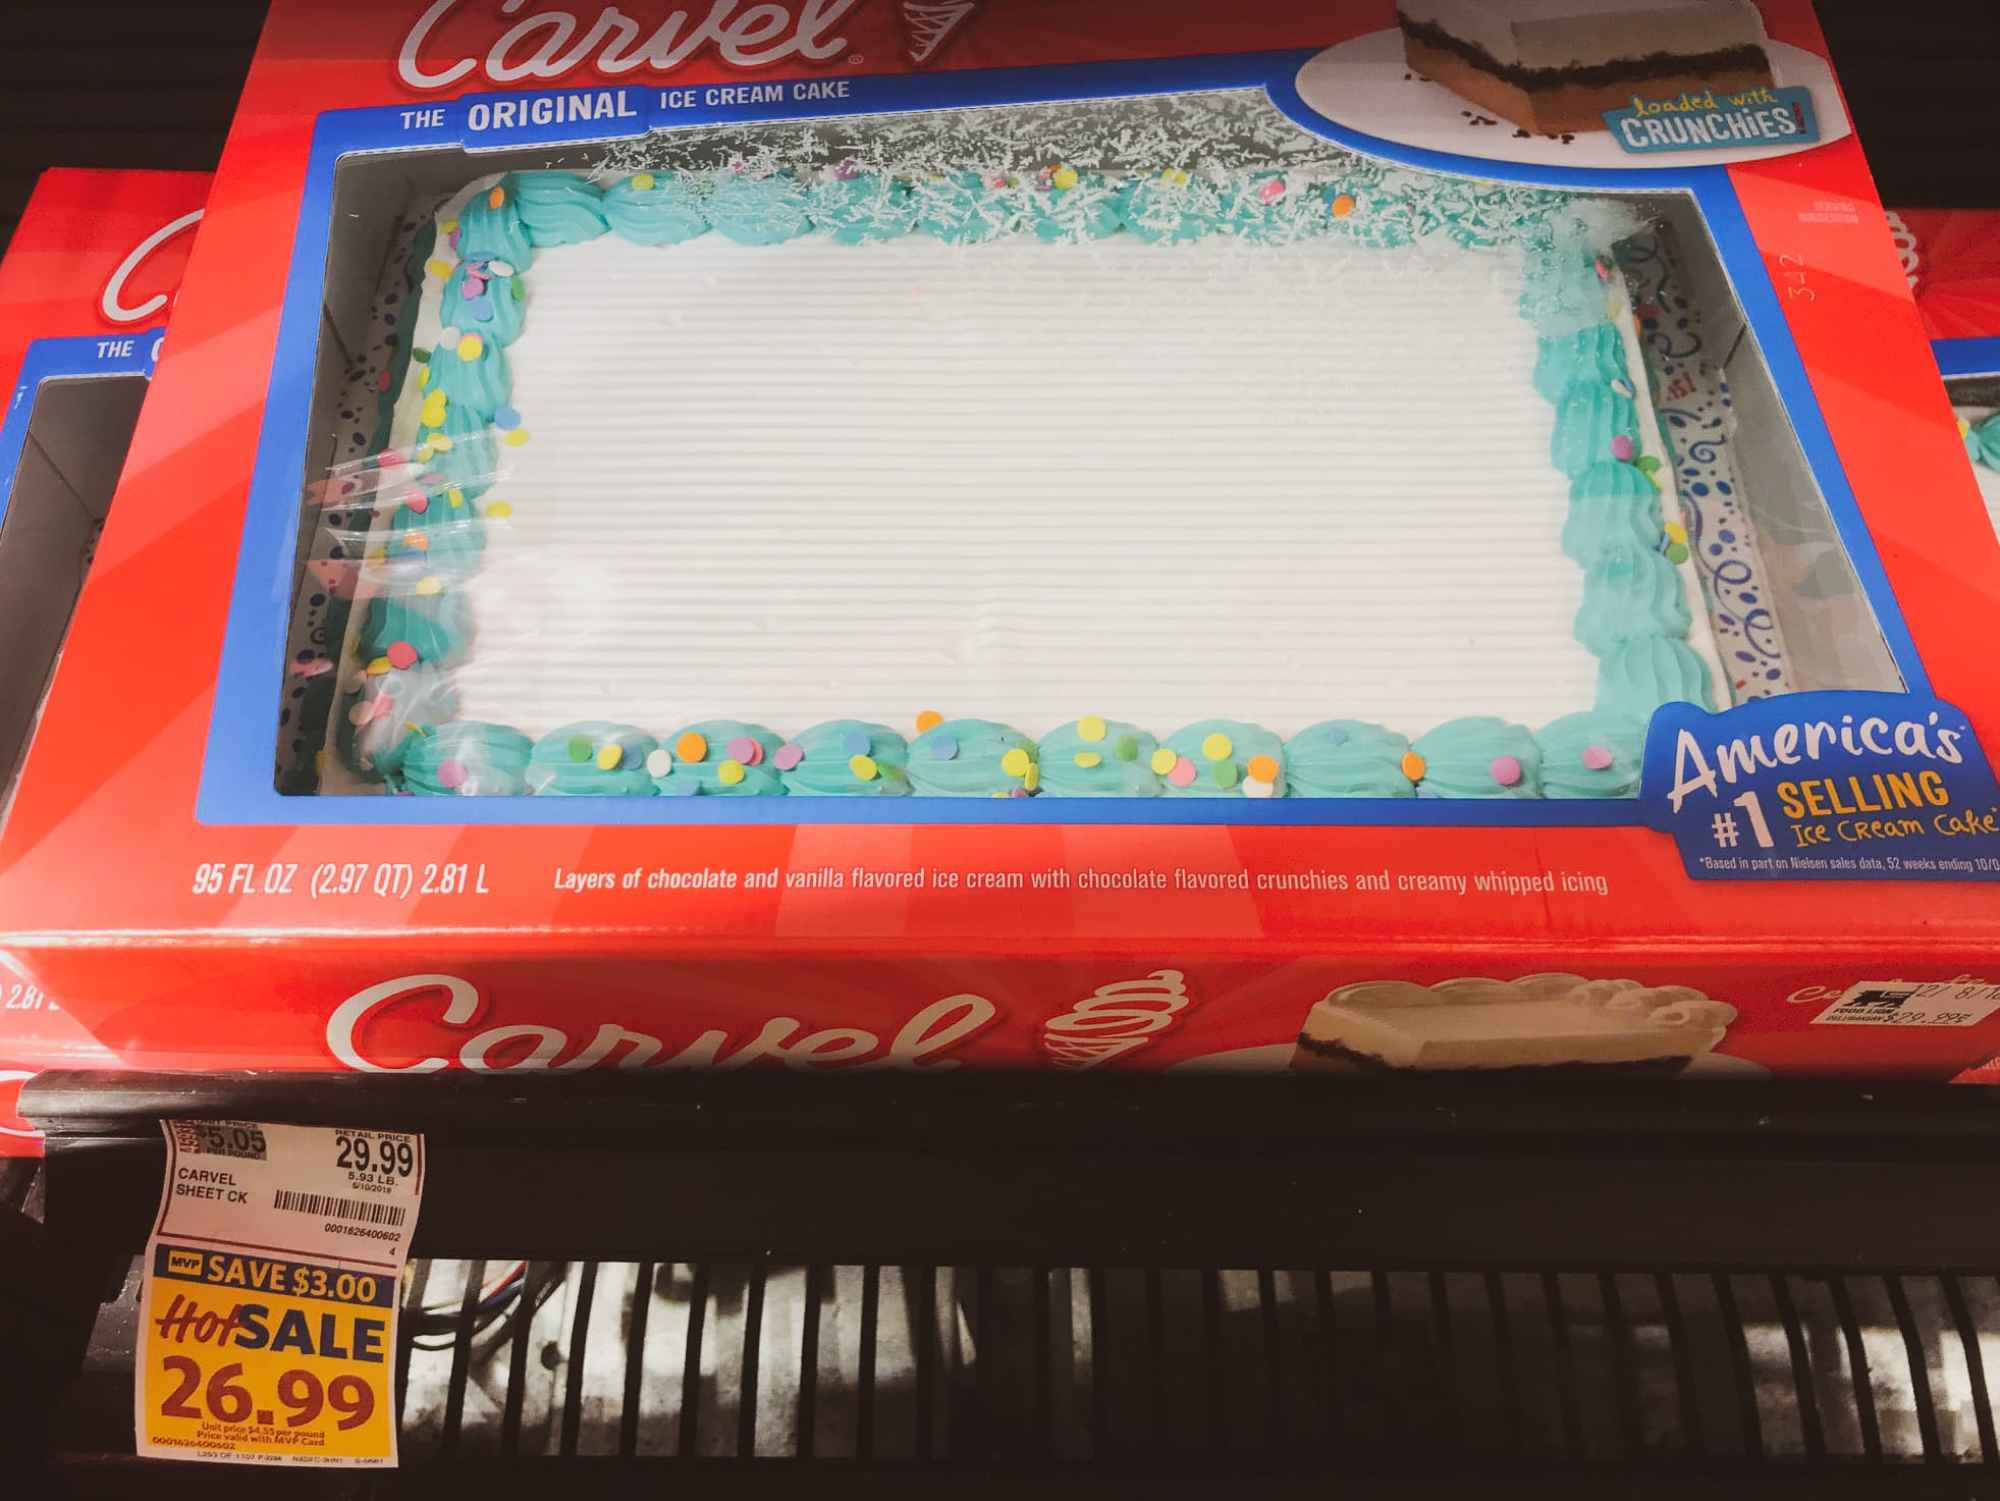 Carvel Ice Cram Cake In The Freezer At Food Lion Ready To Be Transformed